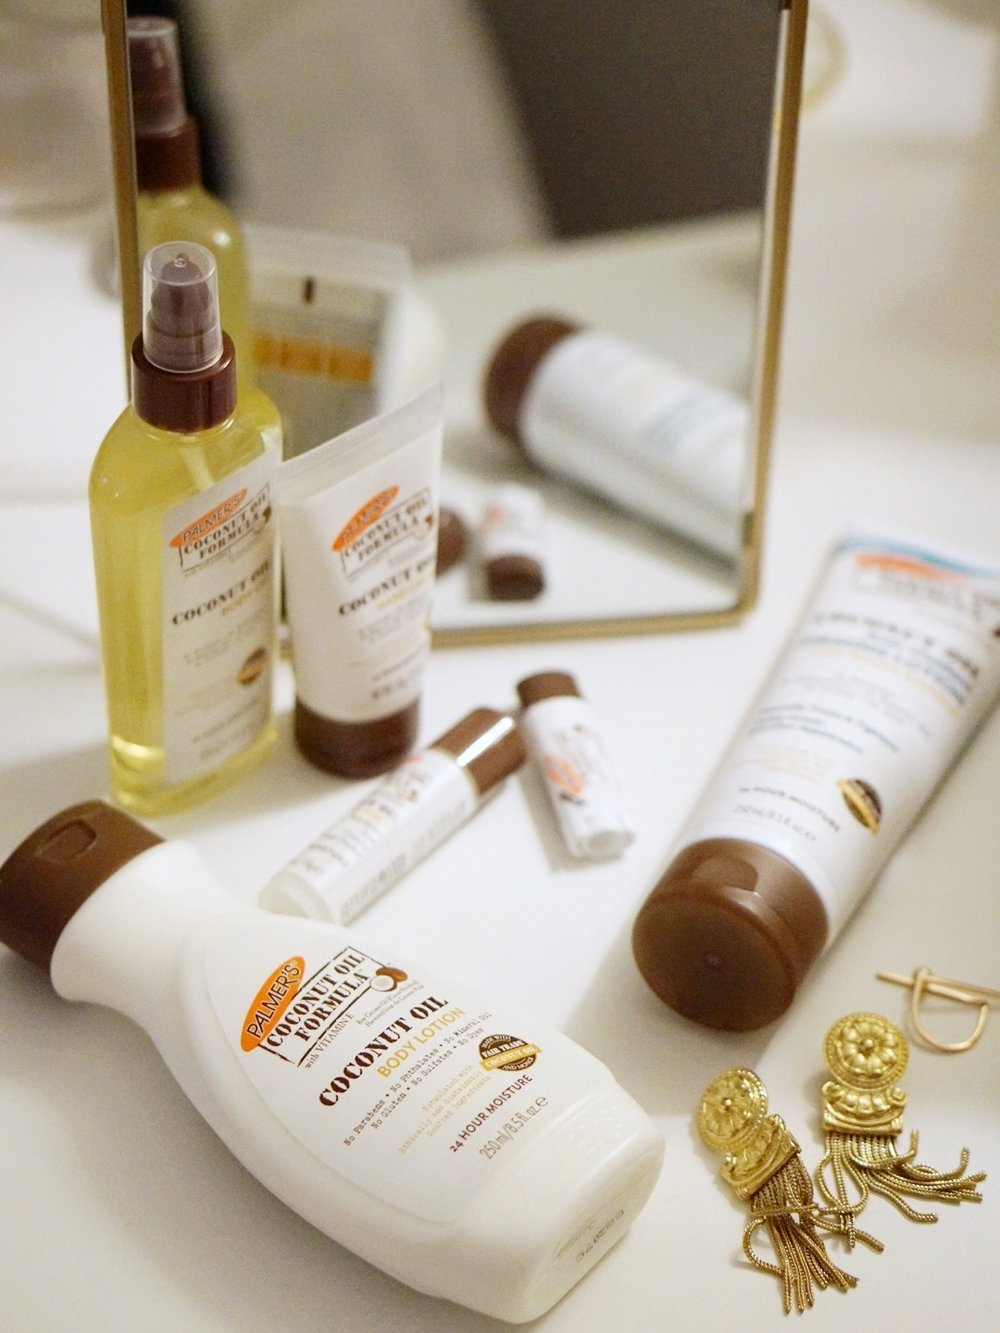 A few products from Palmer's new coconut oil line.